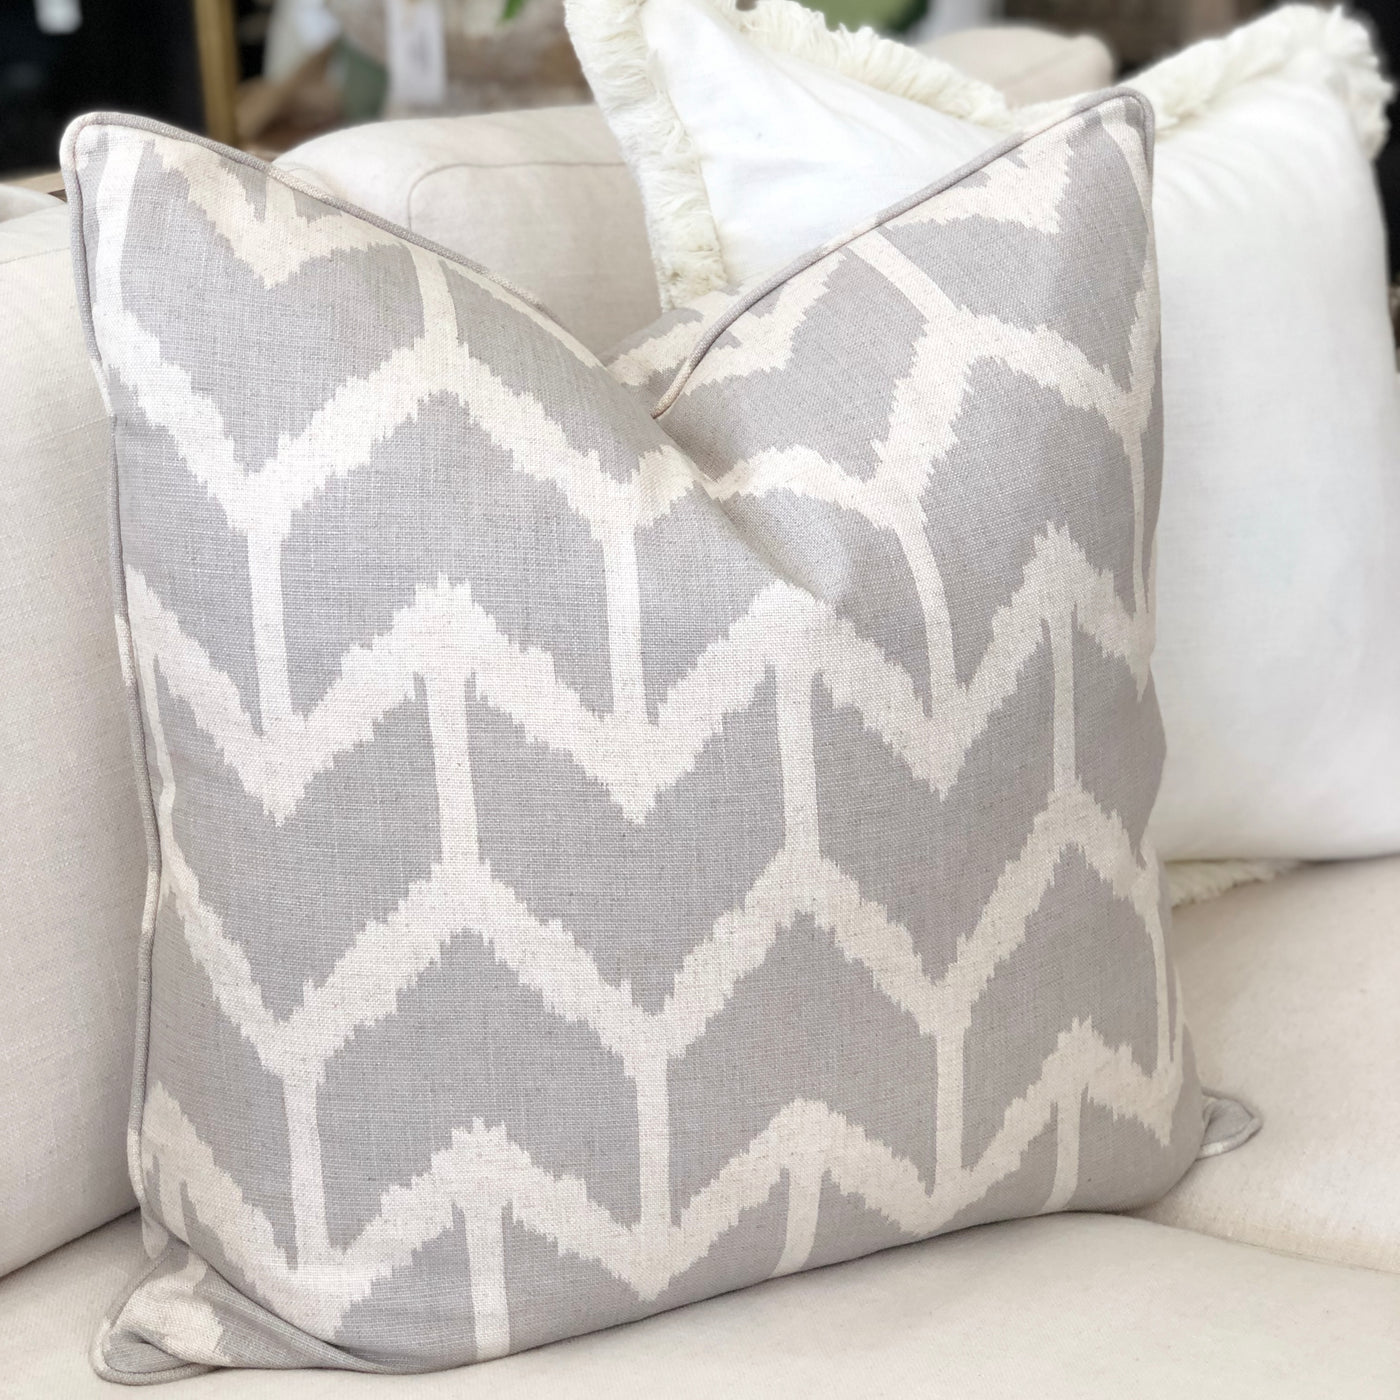 Grey and White Herringbone Print Cushion